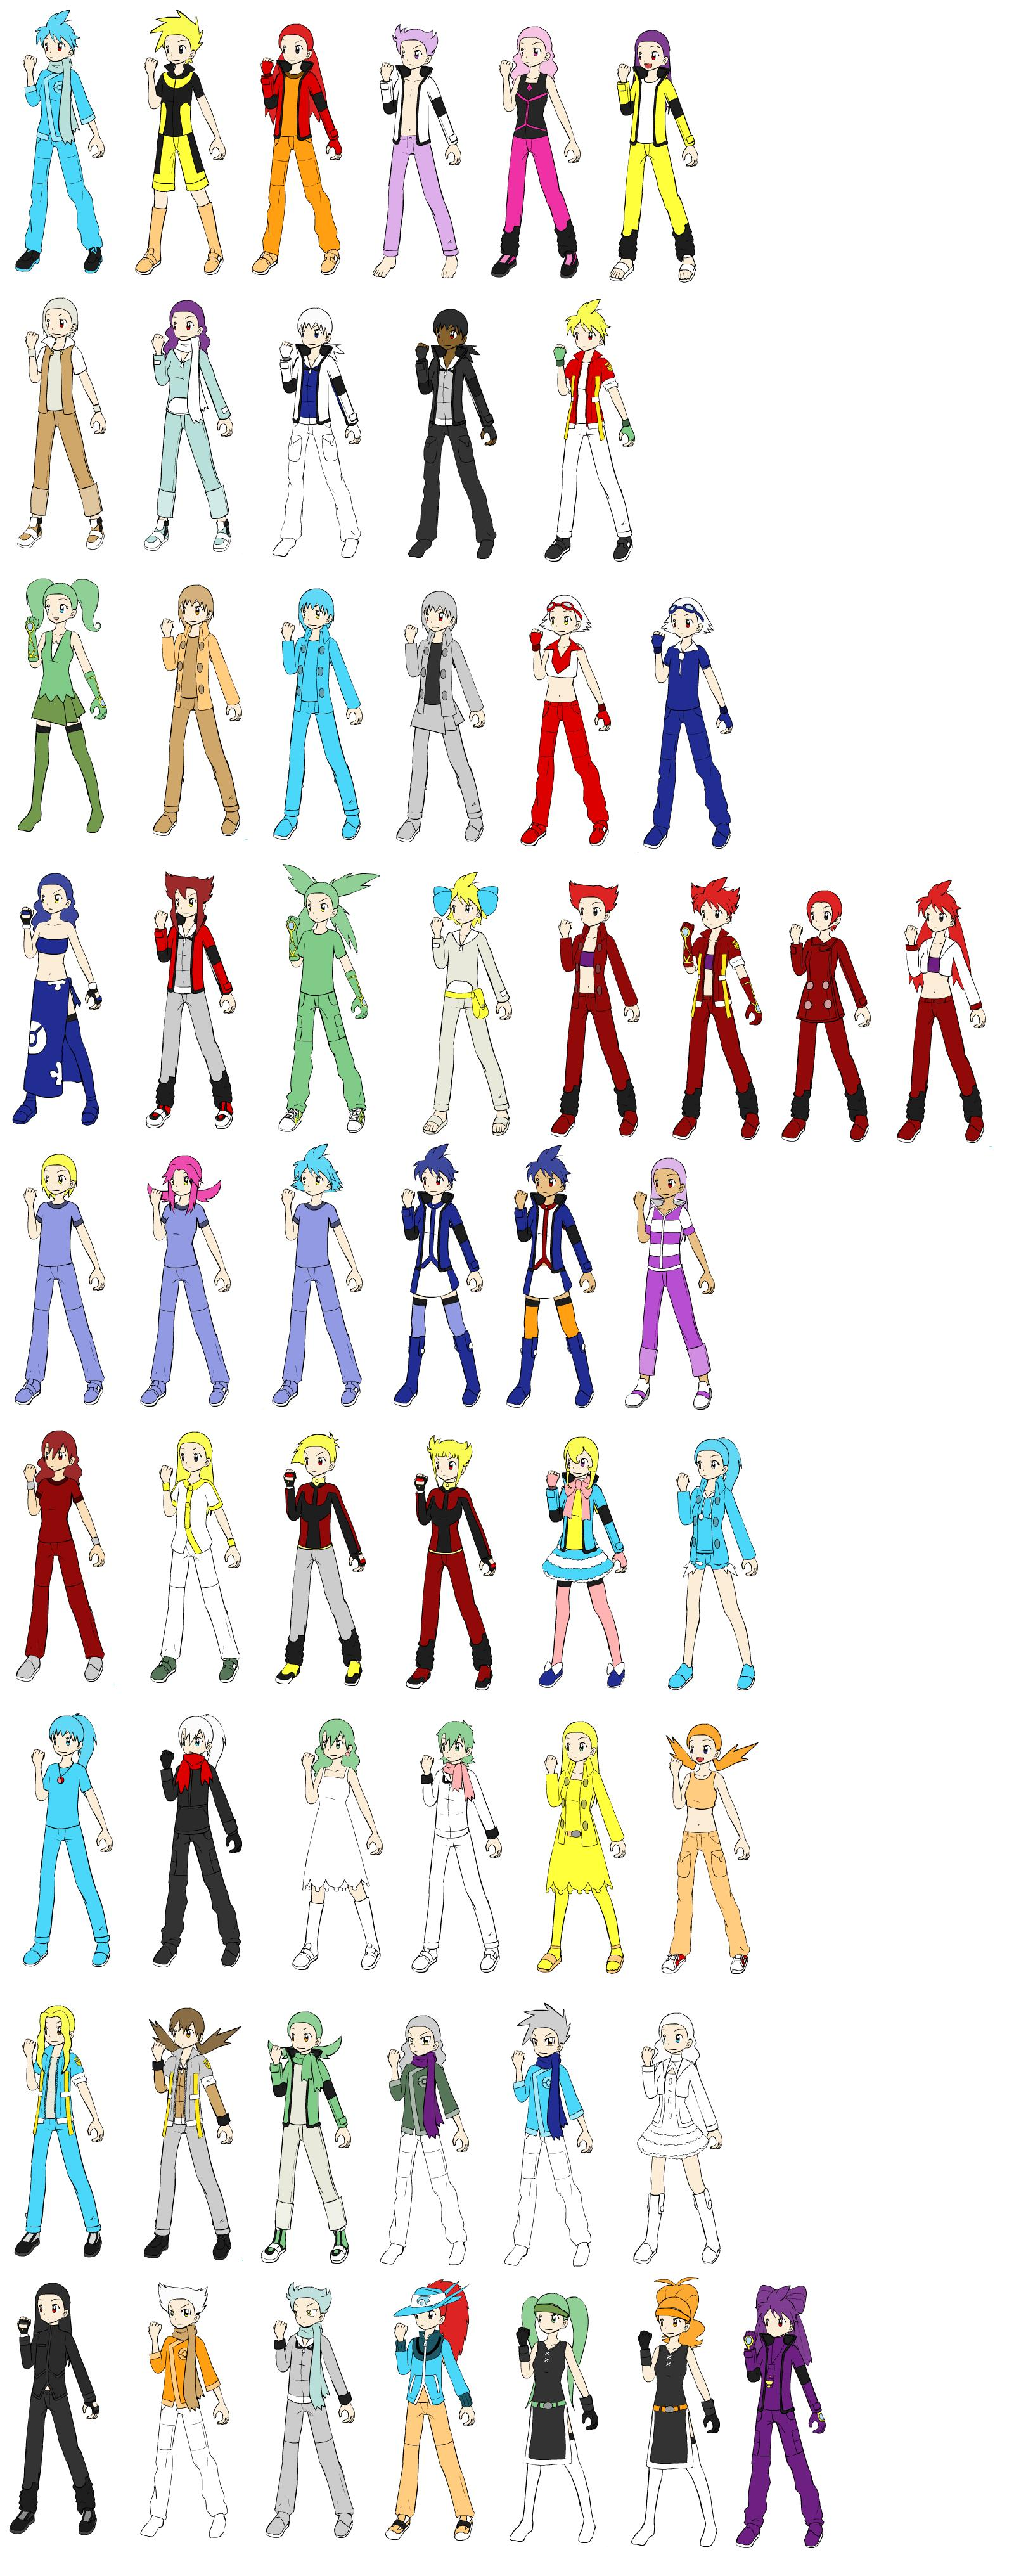 Legendary Pokemon as Trainers by WhiteMoltres on DeviantArt